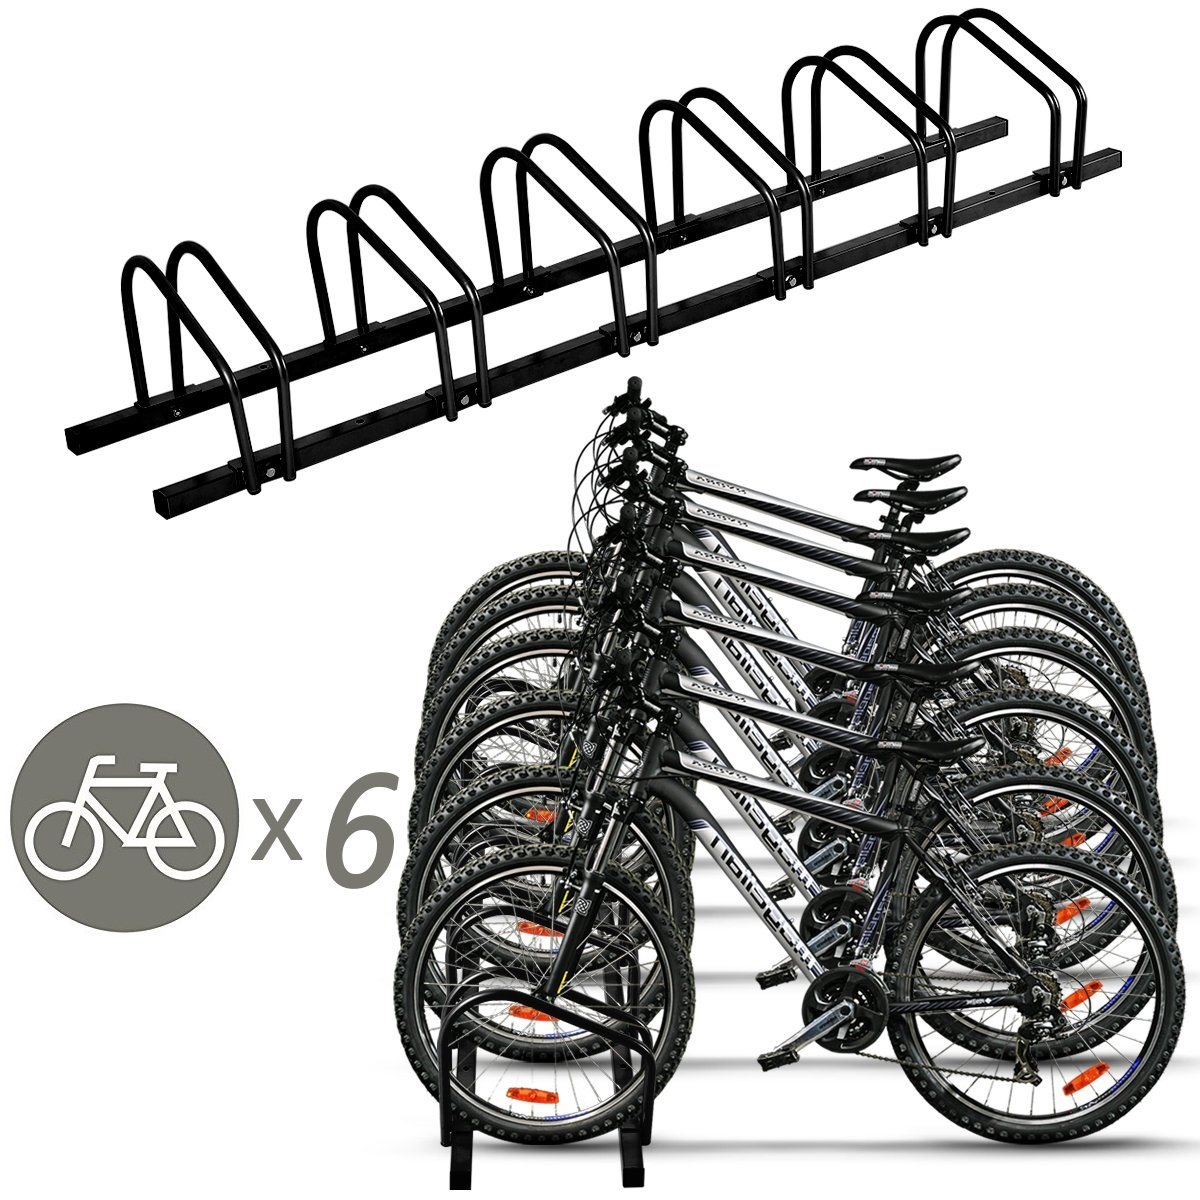 Parking Garage Bike Rack Hot Item 6 Bike Rack Bicycle Stand Parking Garage Storage Organizer Cycling Rack Black